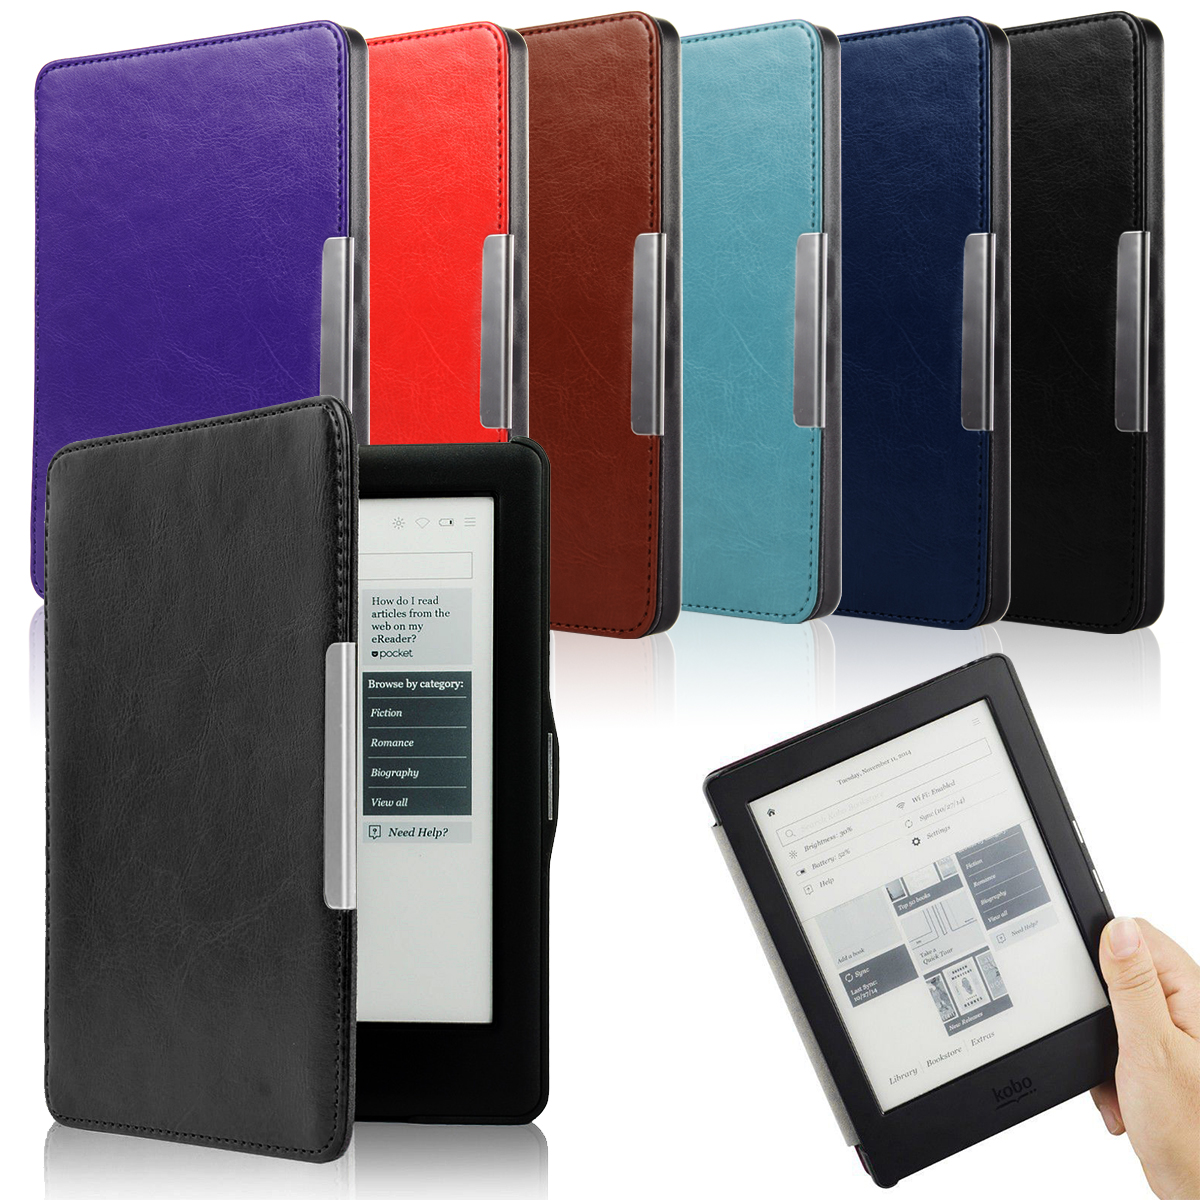 6.0 Synthetic Leather Flip Hard Smart Case Magnetic Clasp Slim Book Protect Cover Auto Sleep for KOBO GLO HD eReader PC734/9+